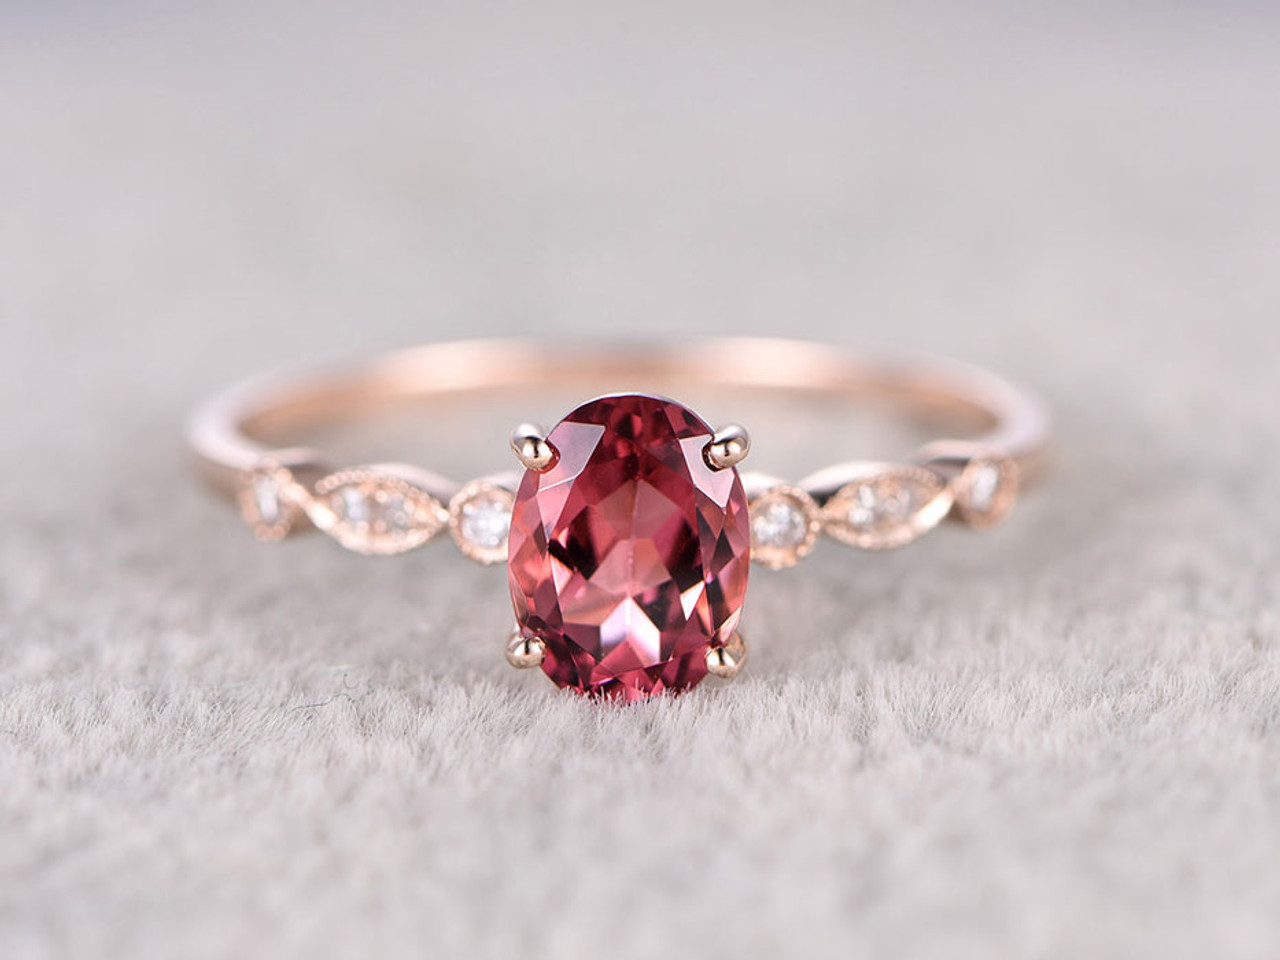 color oval stone big silver pink cz item cut crystal white amazing finger super gold ring rings